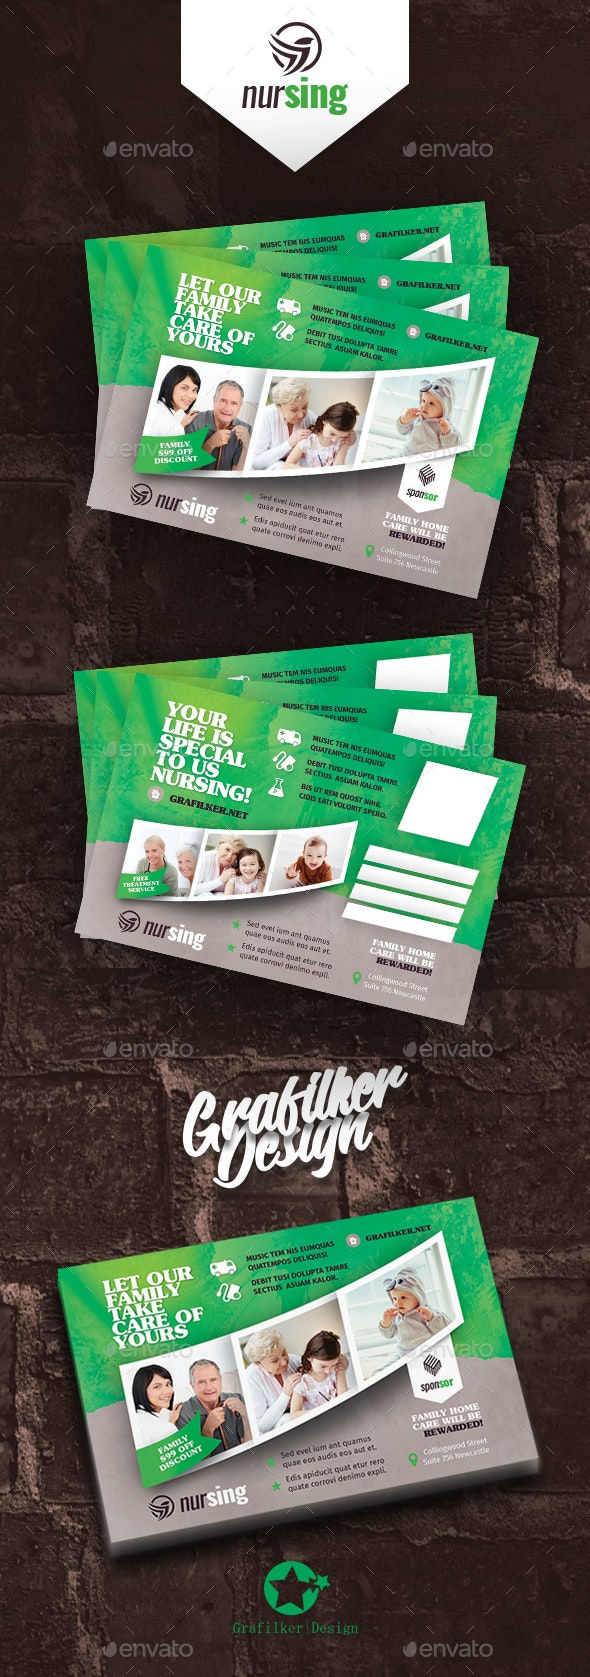 Nursing Home Postcard Templates - Cards & Invites Print Templates